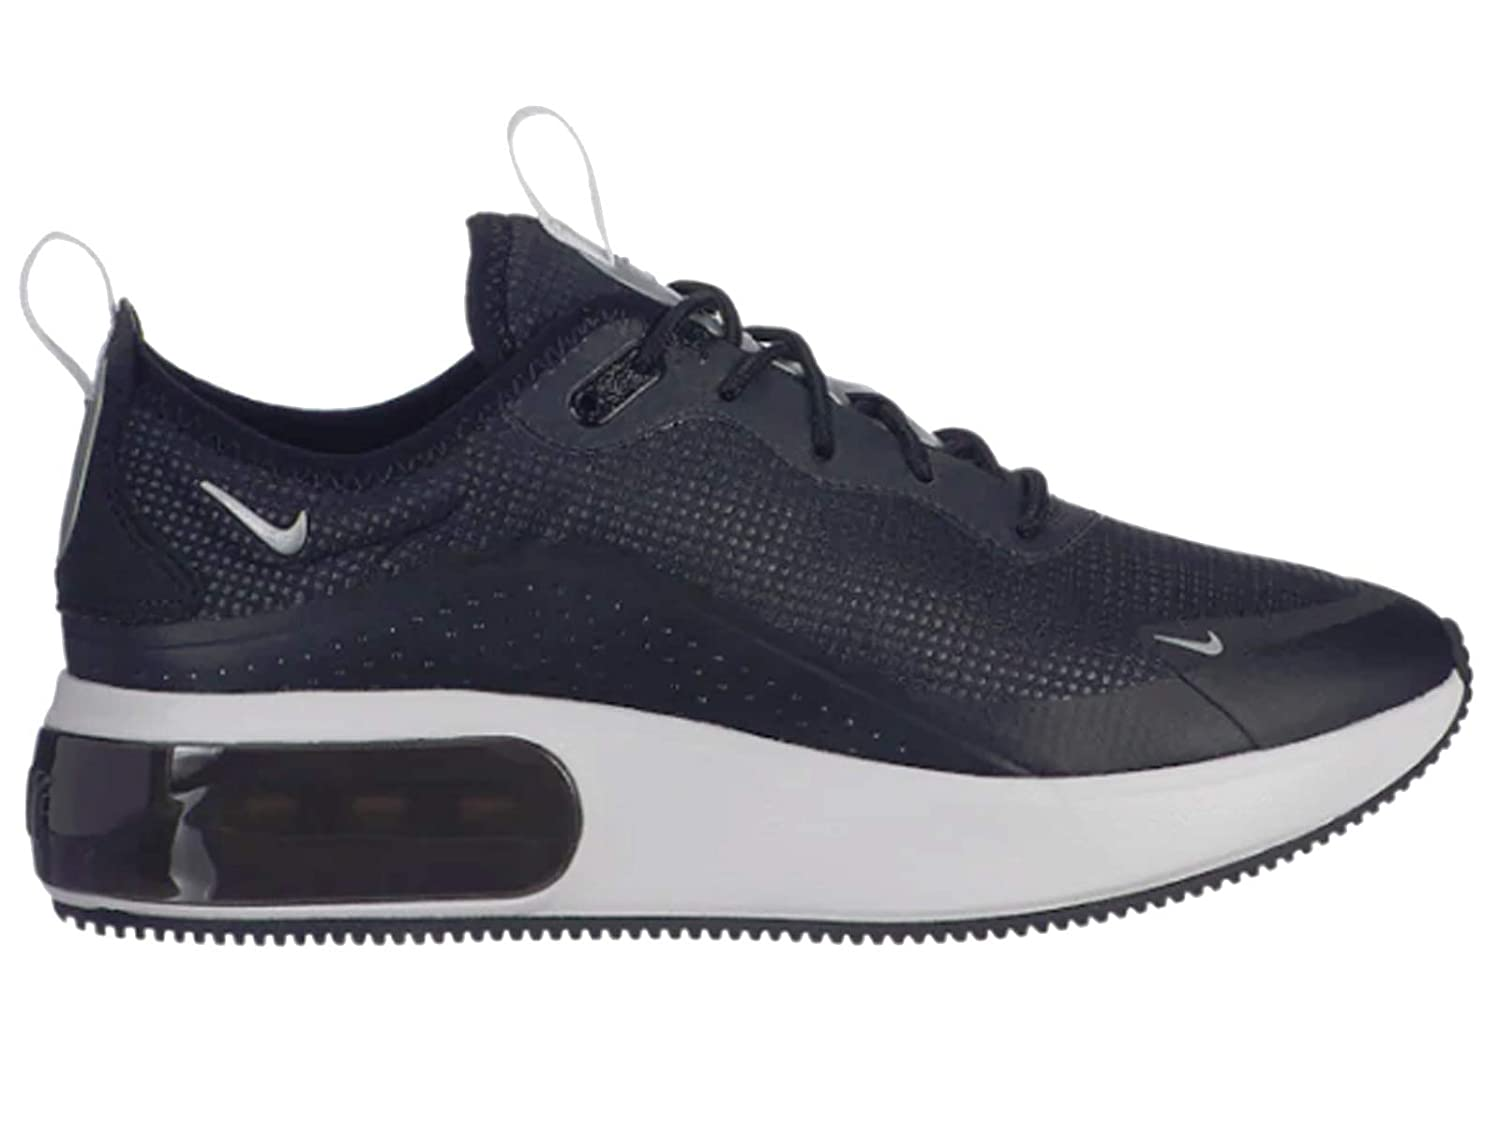 size 40 7fed0 cd68a Amazon.com   Nike Women s Air Max Dia Mesh Cross-Trainers Shoes   Fashion  Sneakers